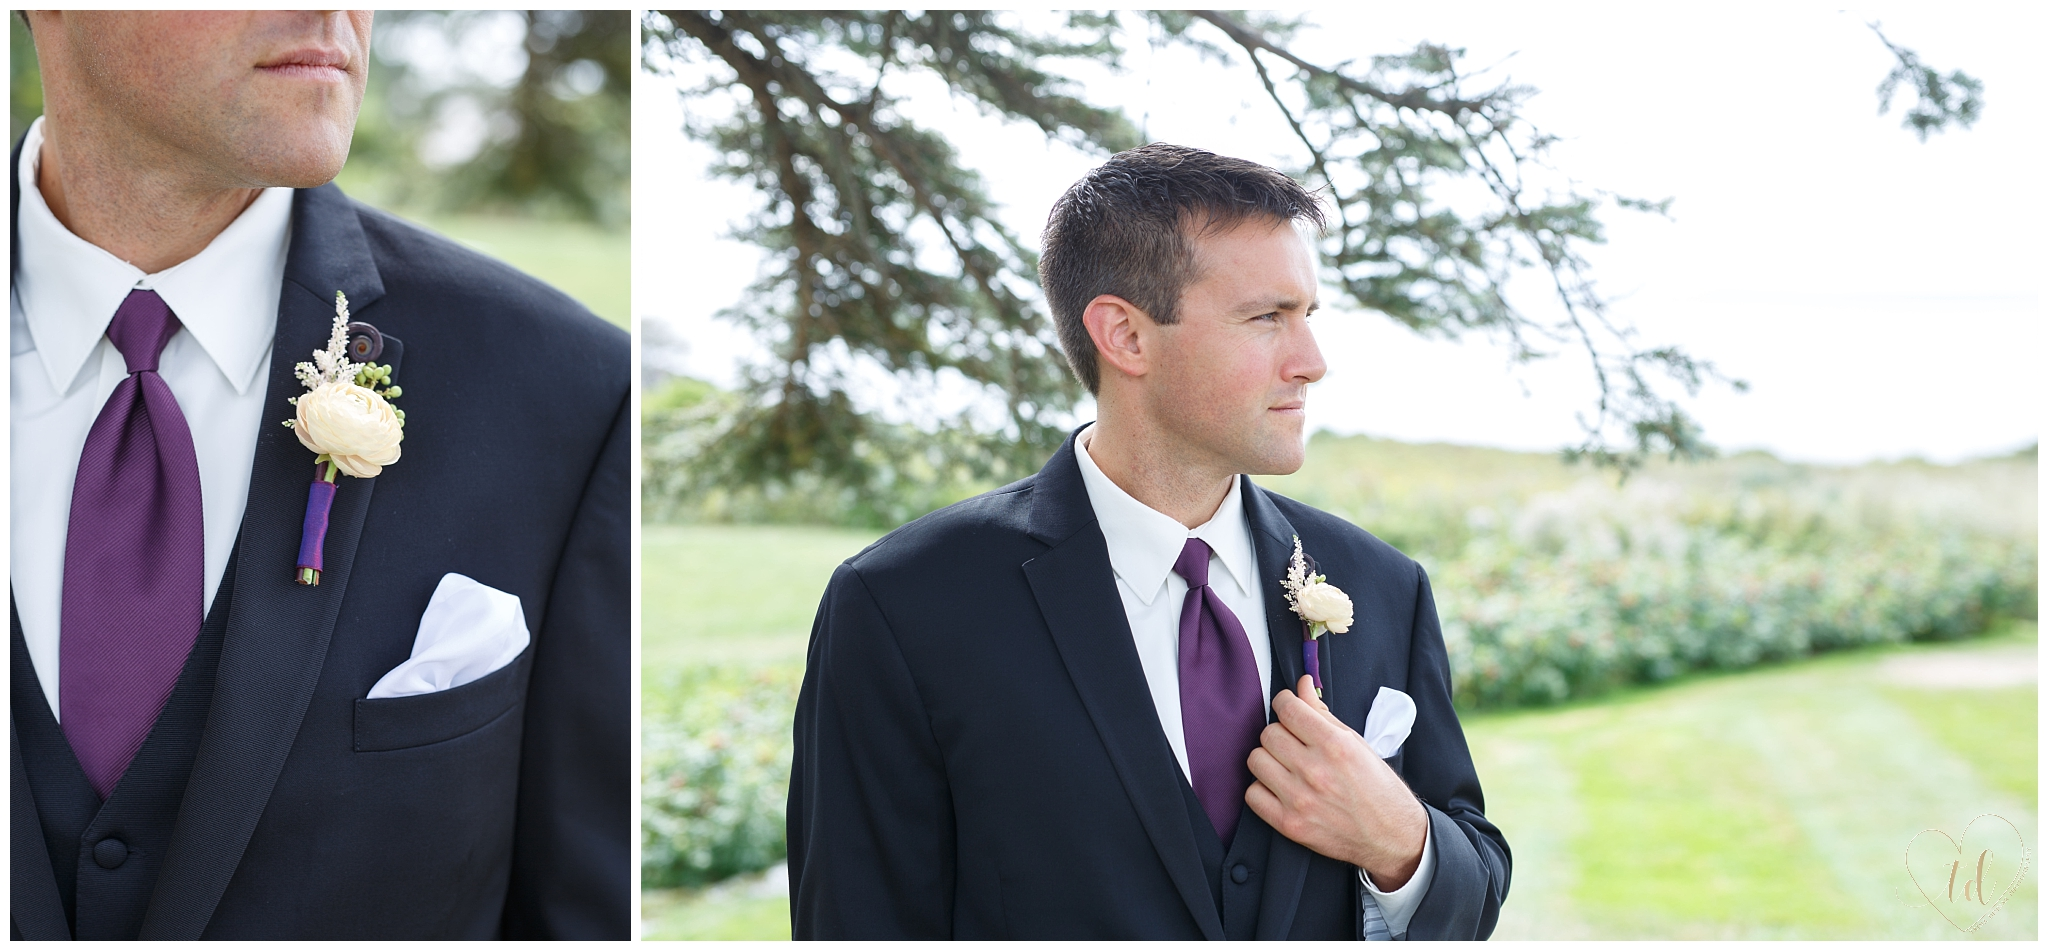 Portraits of a Maine groom on his wedding day.